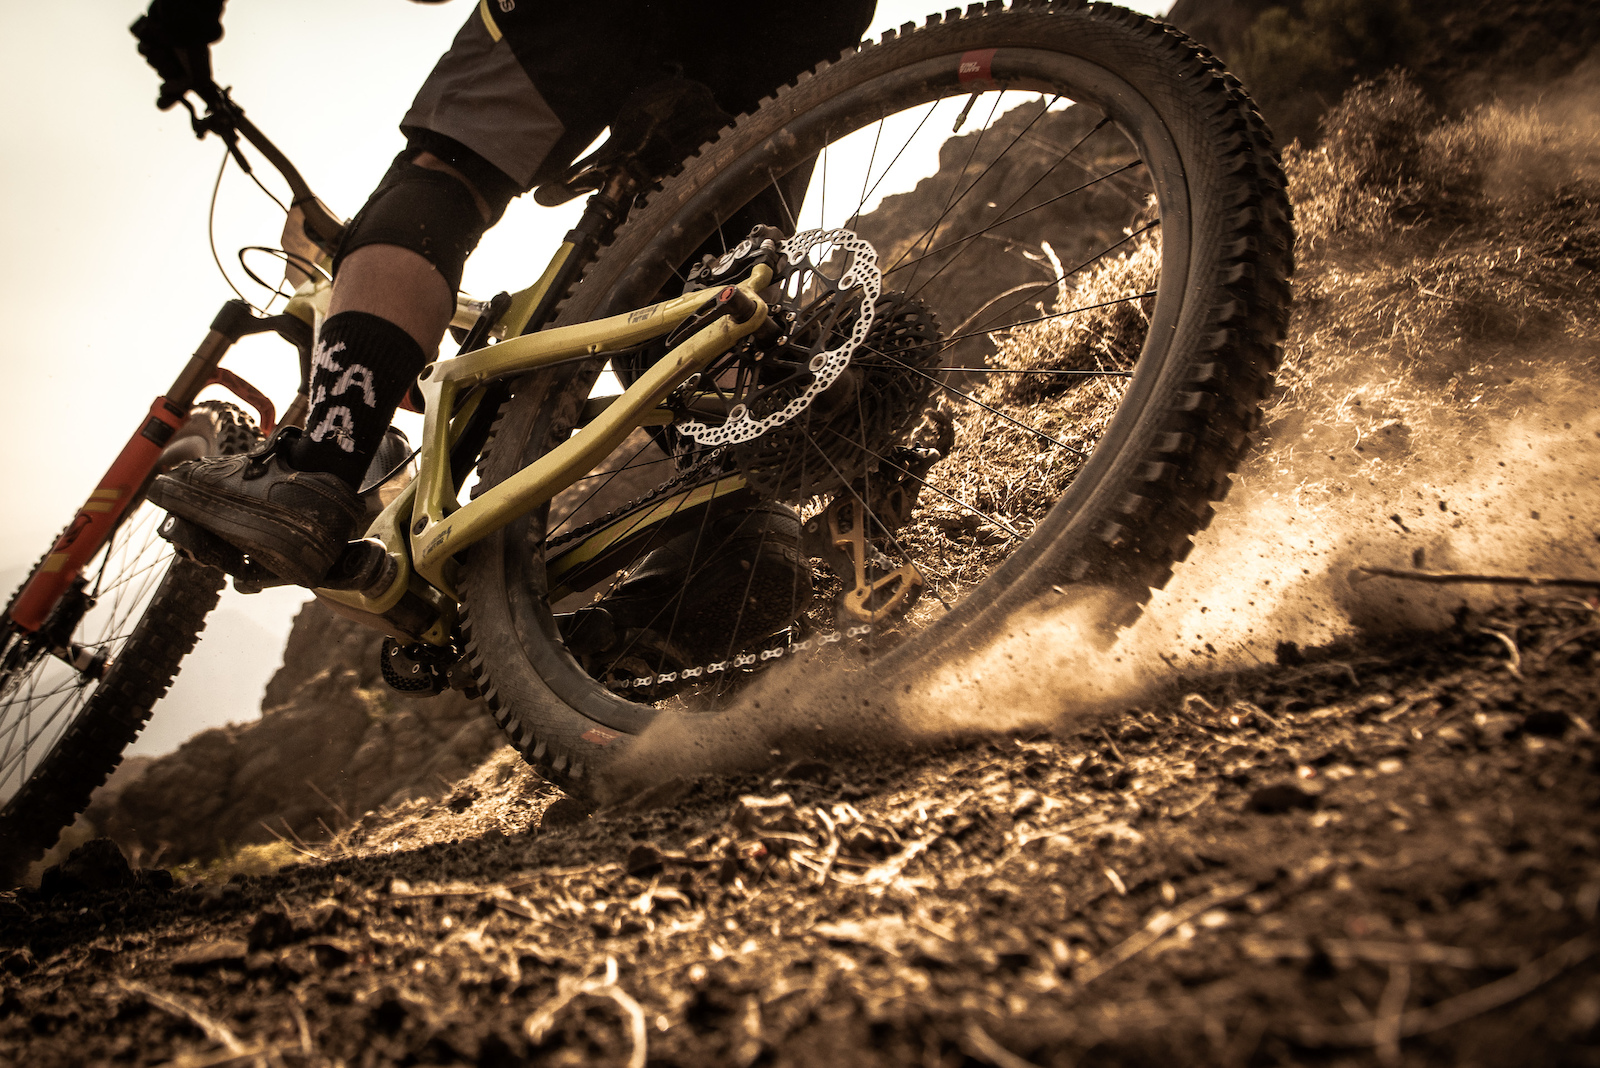 Trying to find grip on the dirt in the Andes is a science few have mastered.